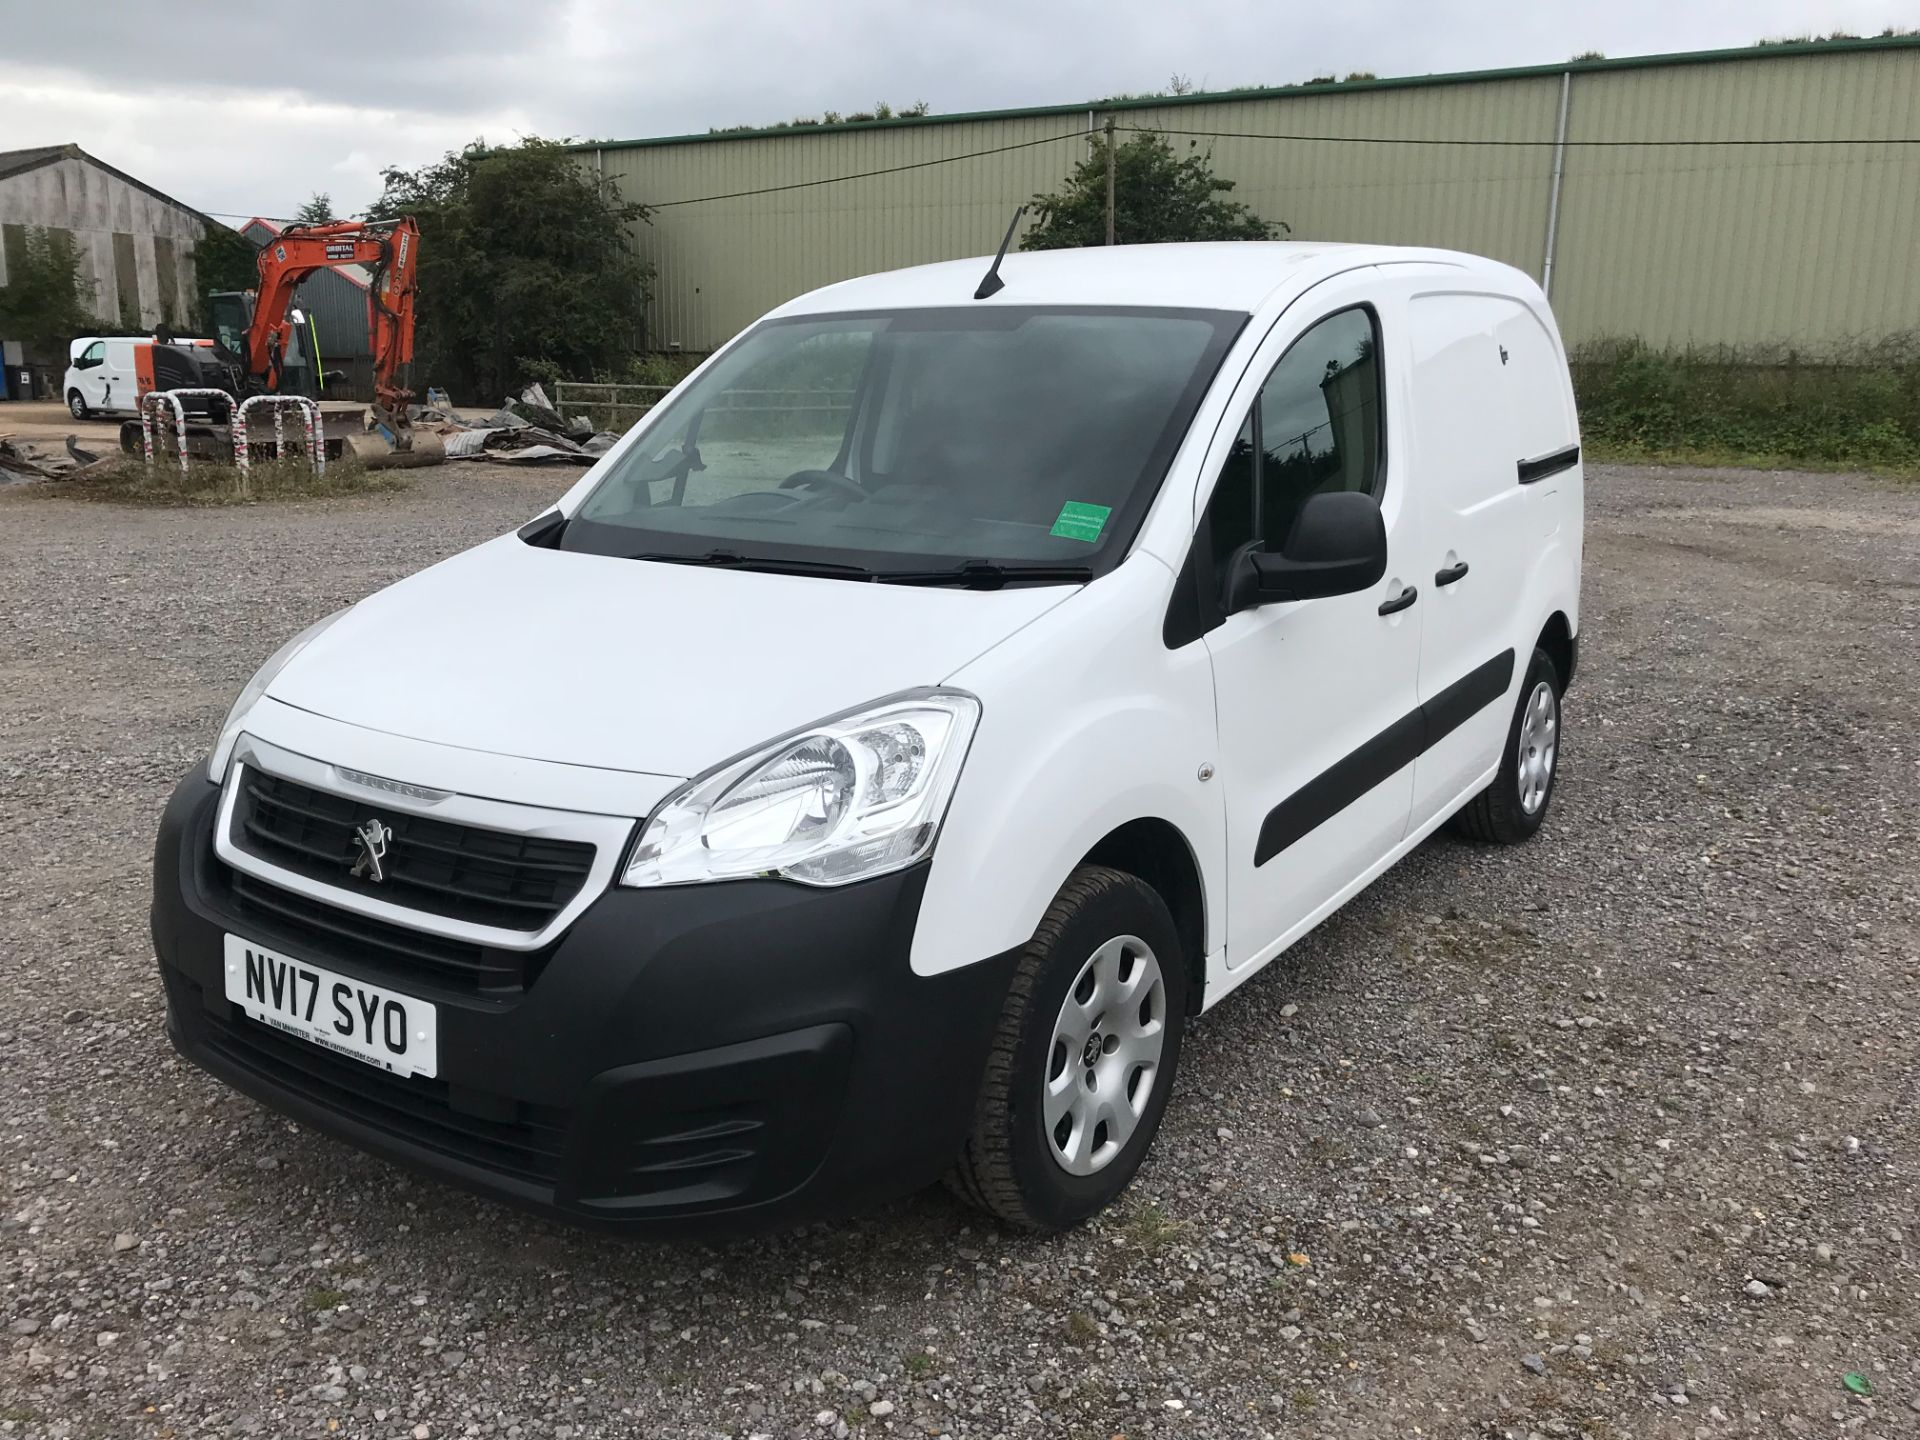 2017 Peugeot Partner L1 850 1.6 BLUEHDI 100 PROFESSIONAL (NON S/S)EURO 6 *Limited to 70MPH* (NV17SYO) Image 3